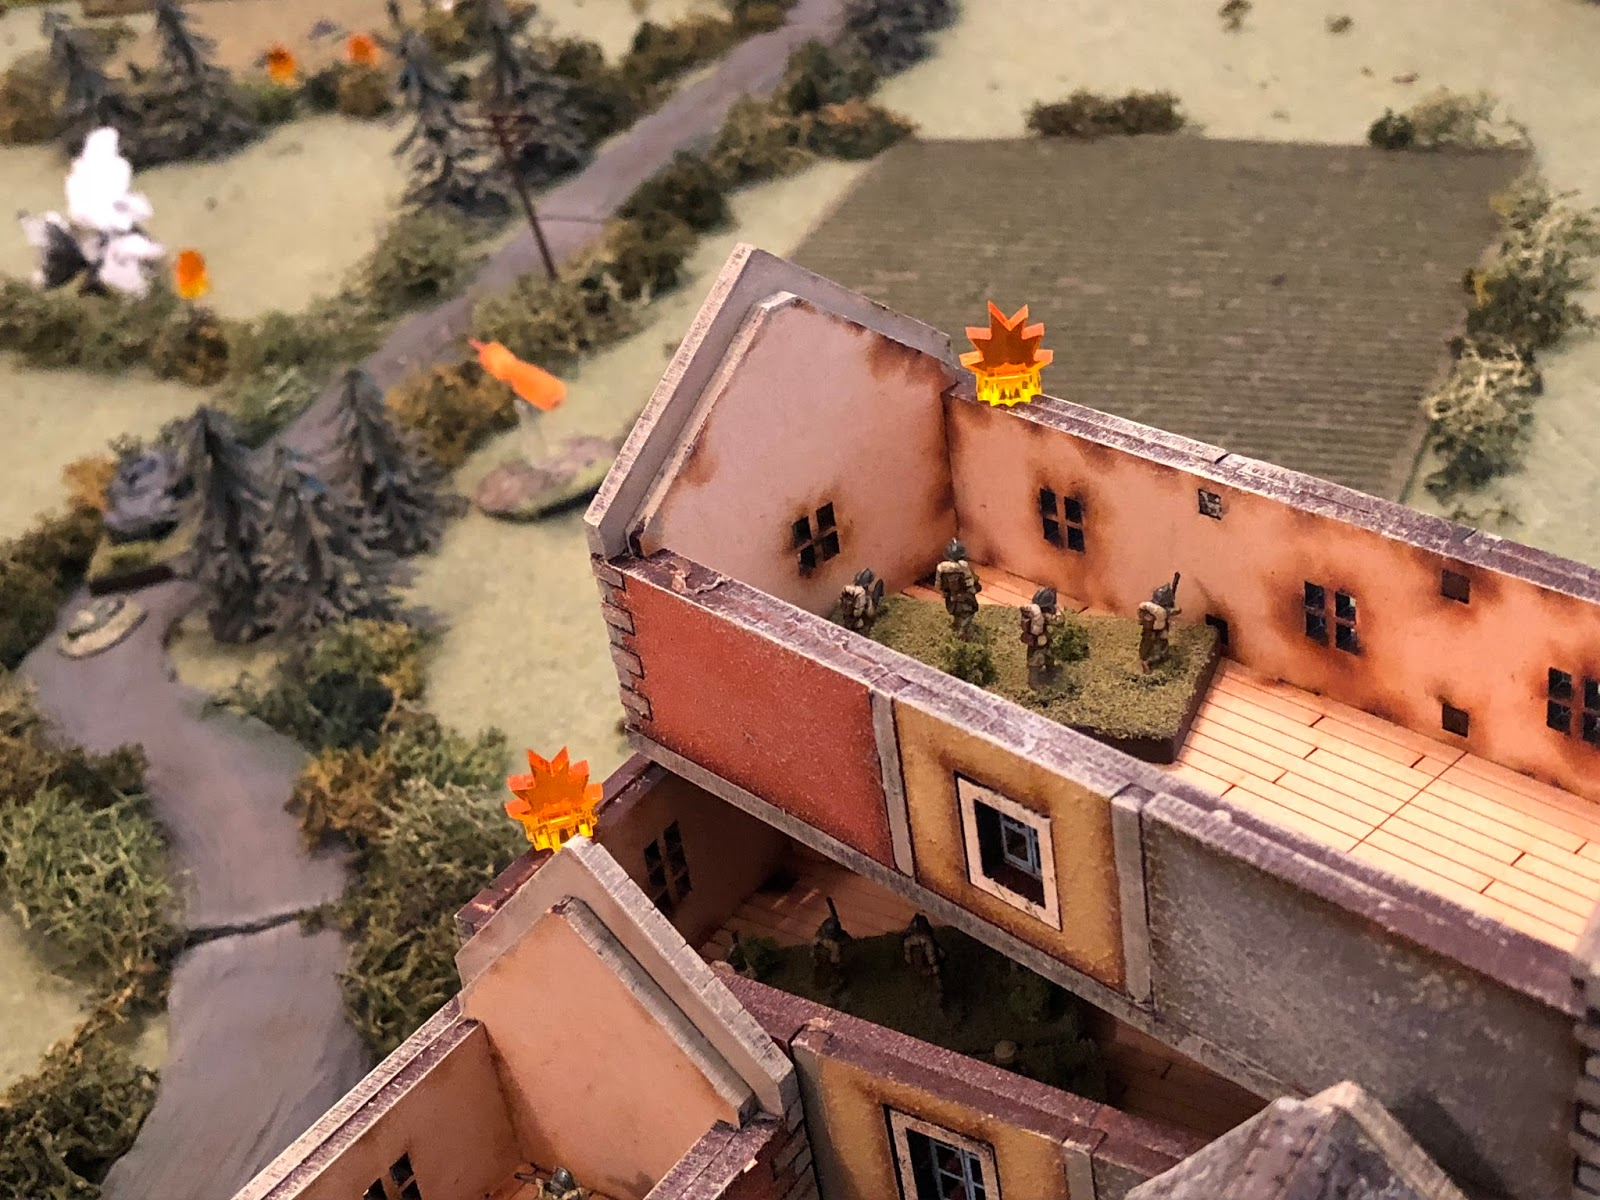 The French 2nd Platoon (right centre) continues to fire on the German 4th Platoon (top left), but they're already so beat up I'm not sure how you'd tell if the fire is effective or not...